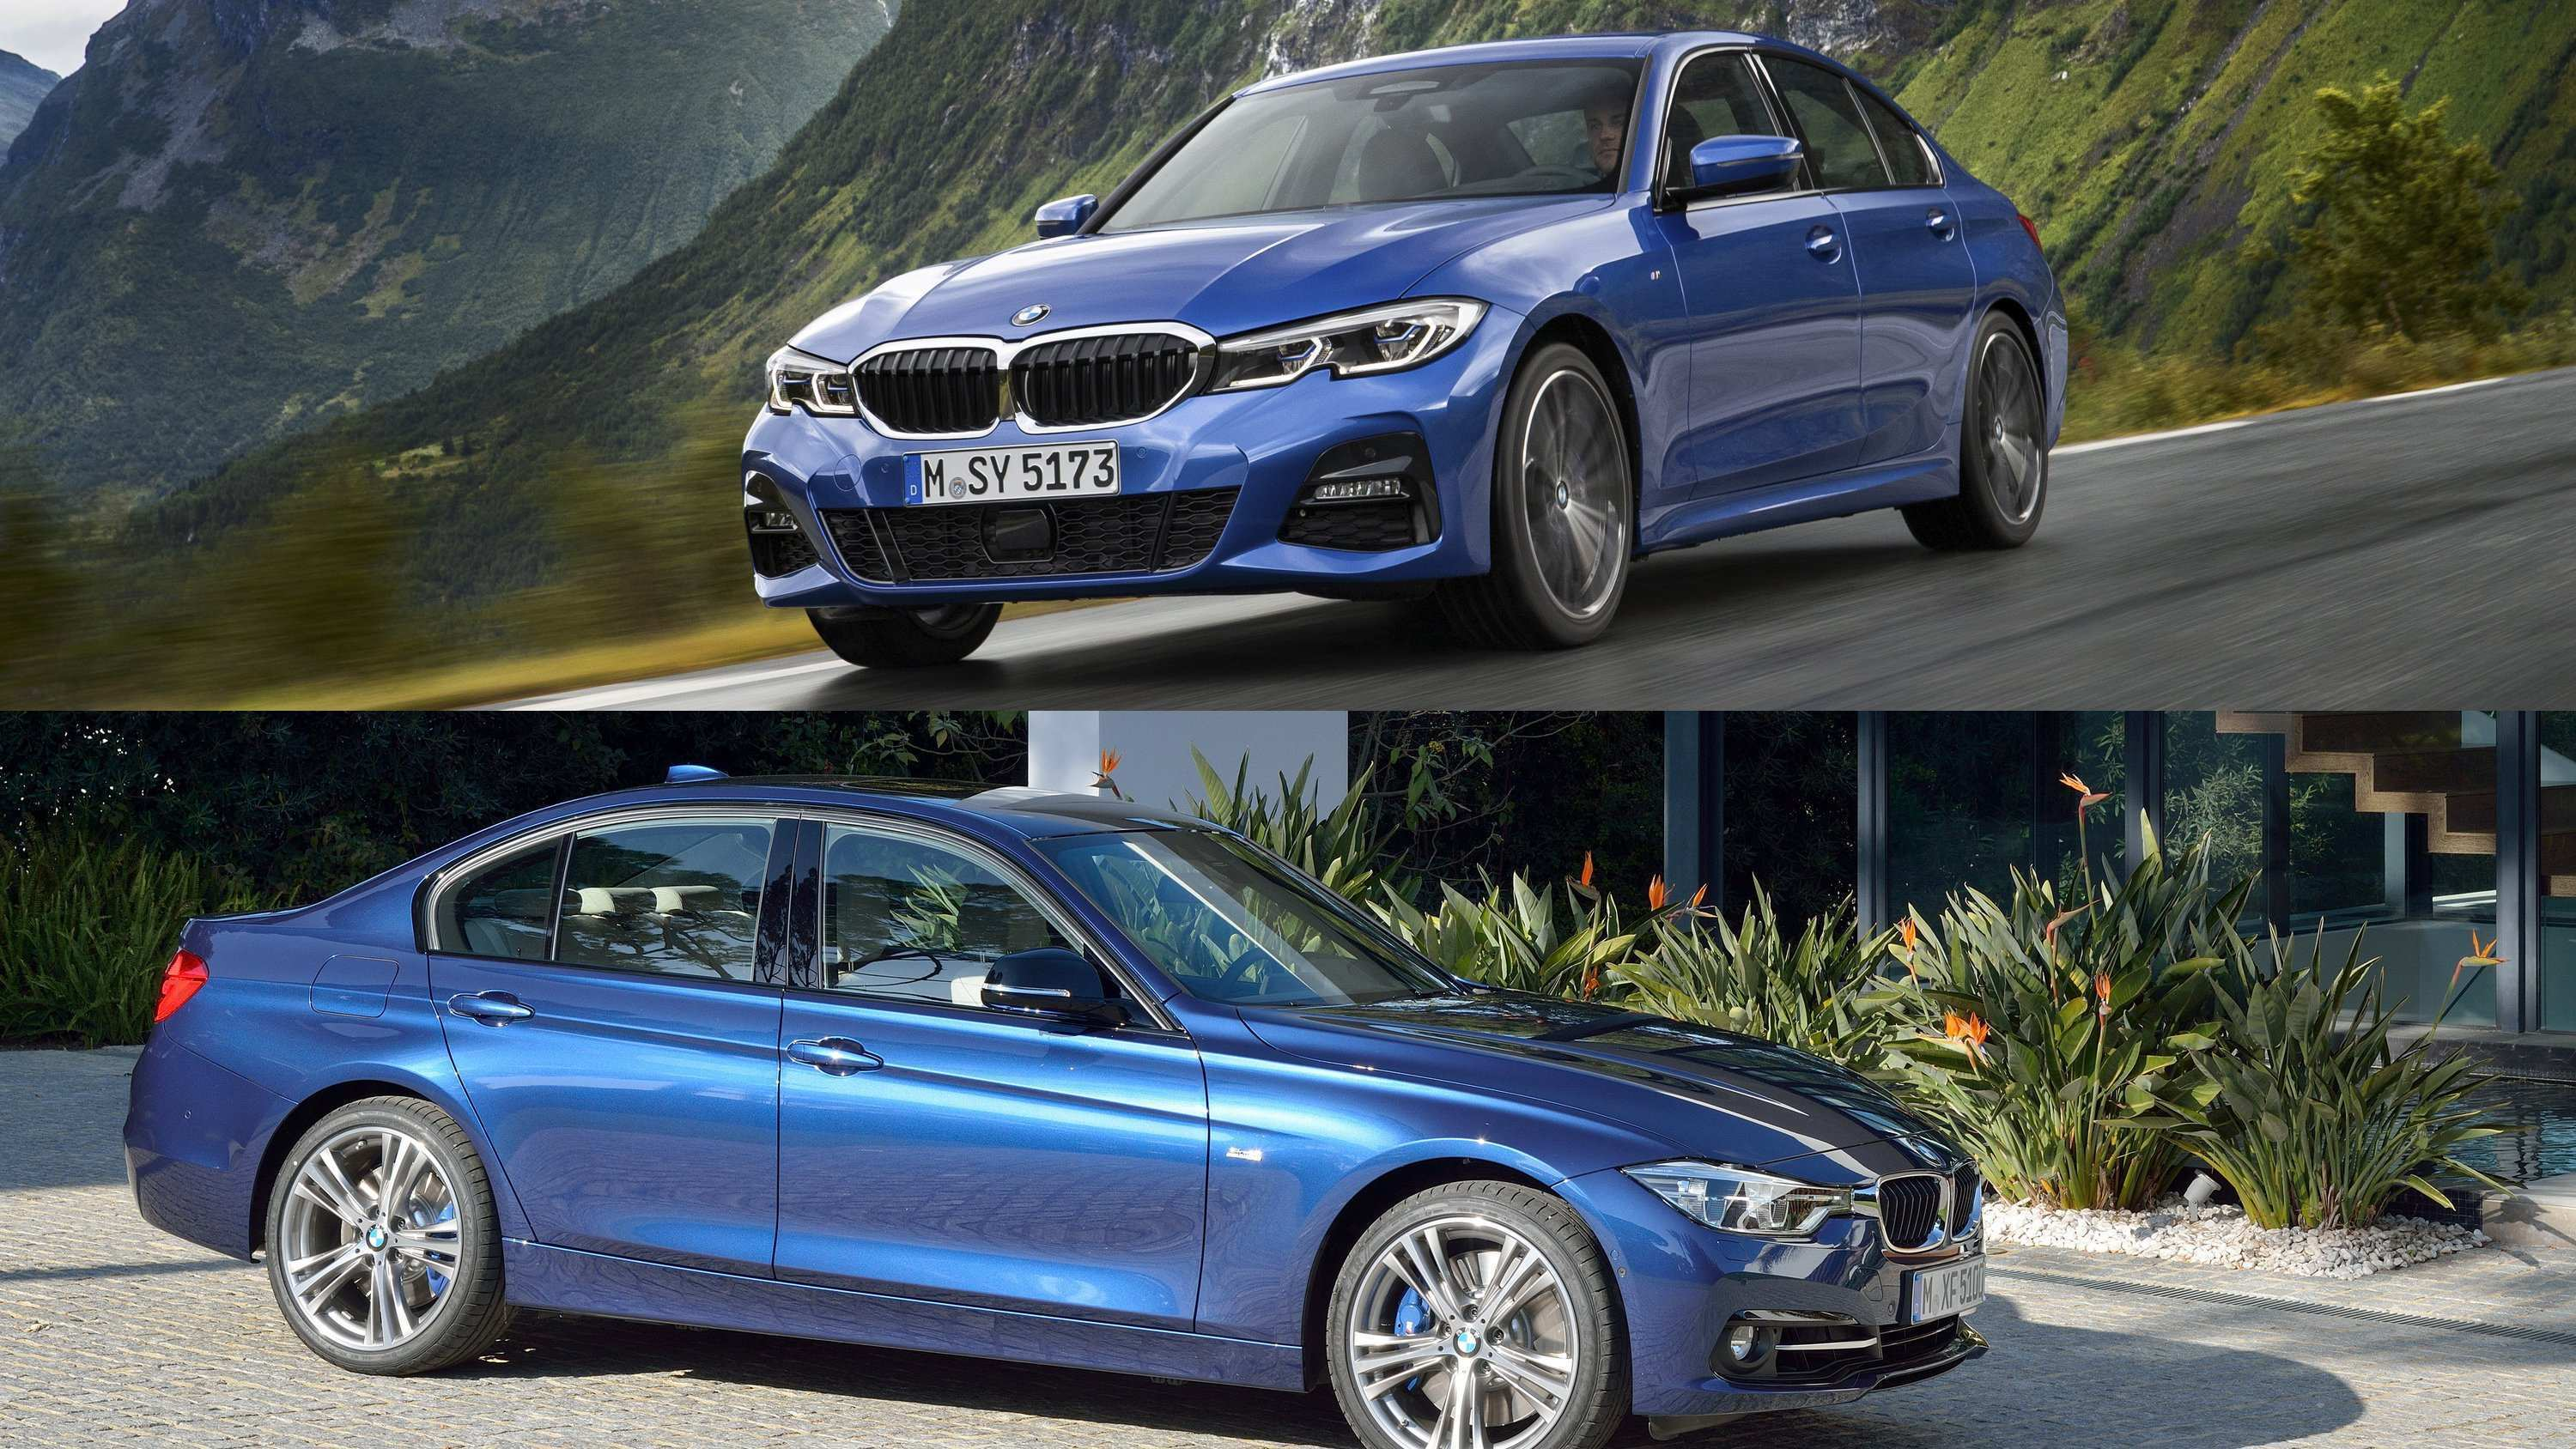 46 The 2020 BMW 3 Series Brings Review